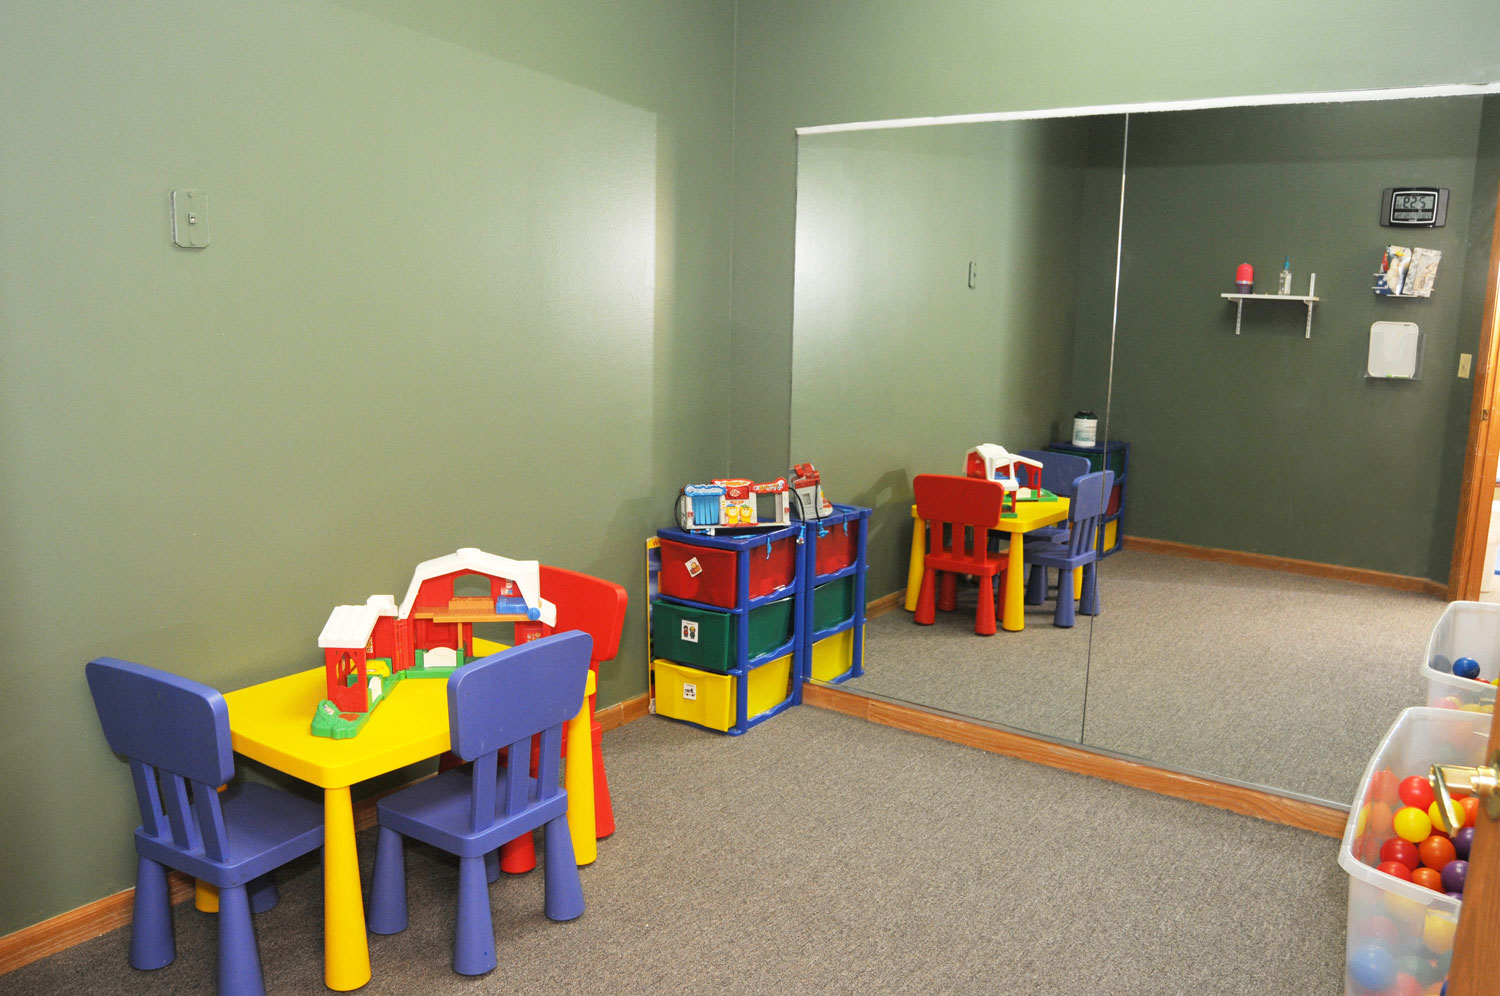 Turtle Room: with lots of toys for kids of all ages